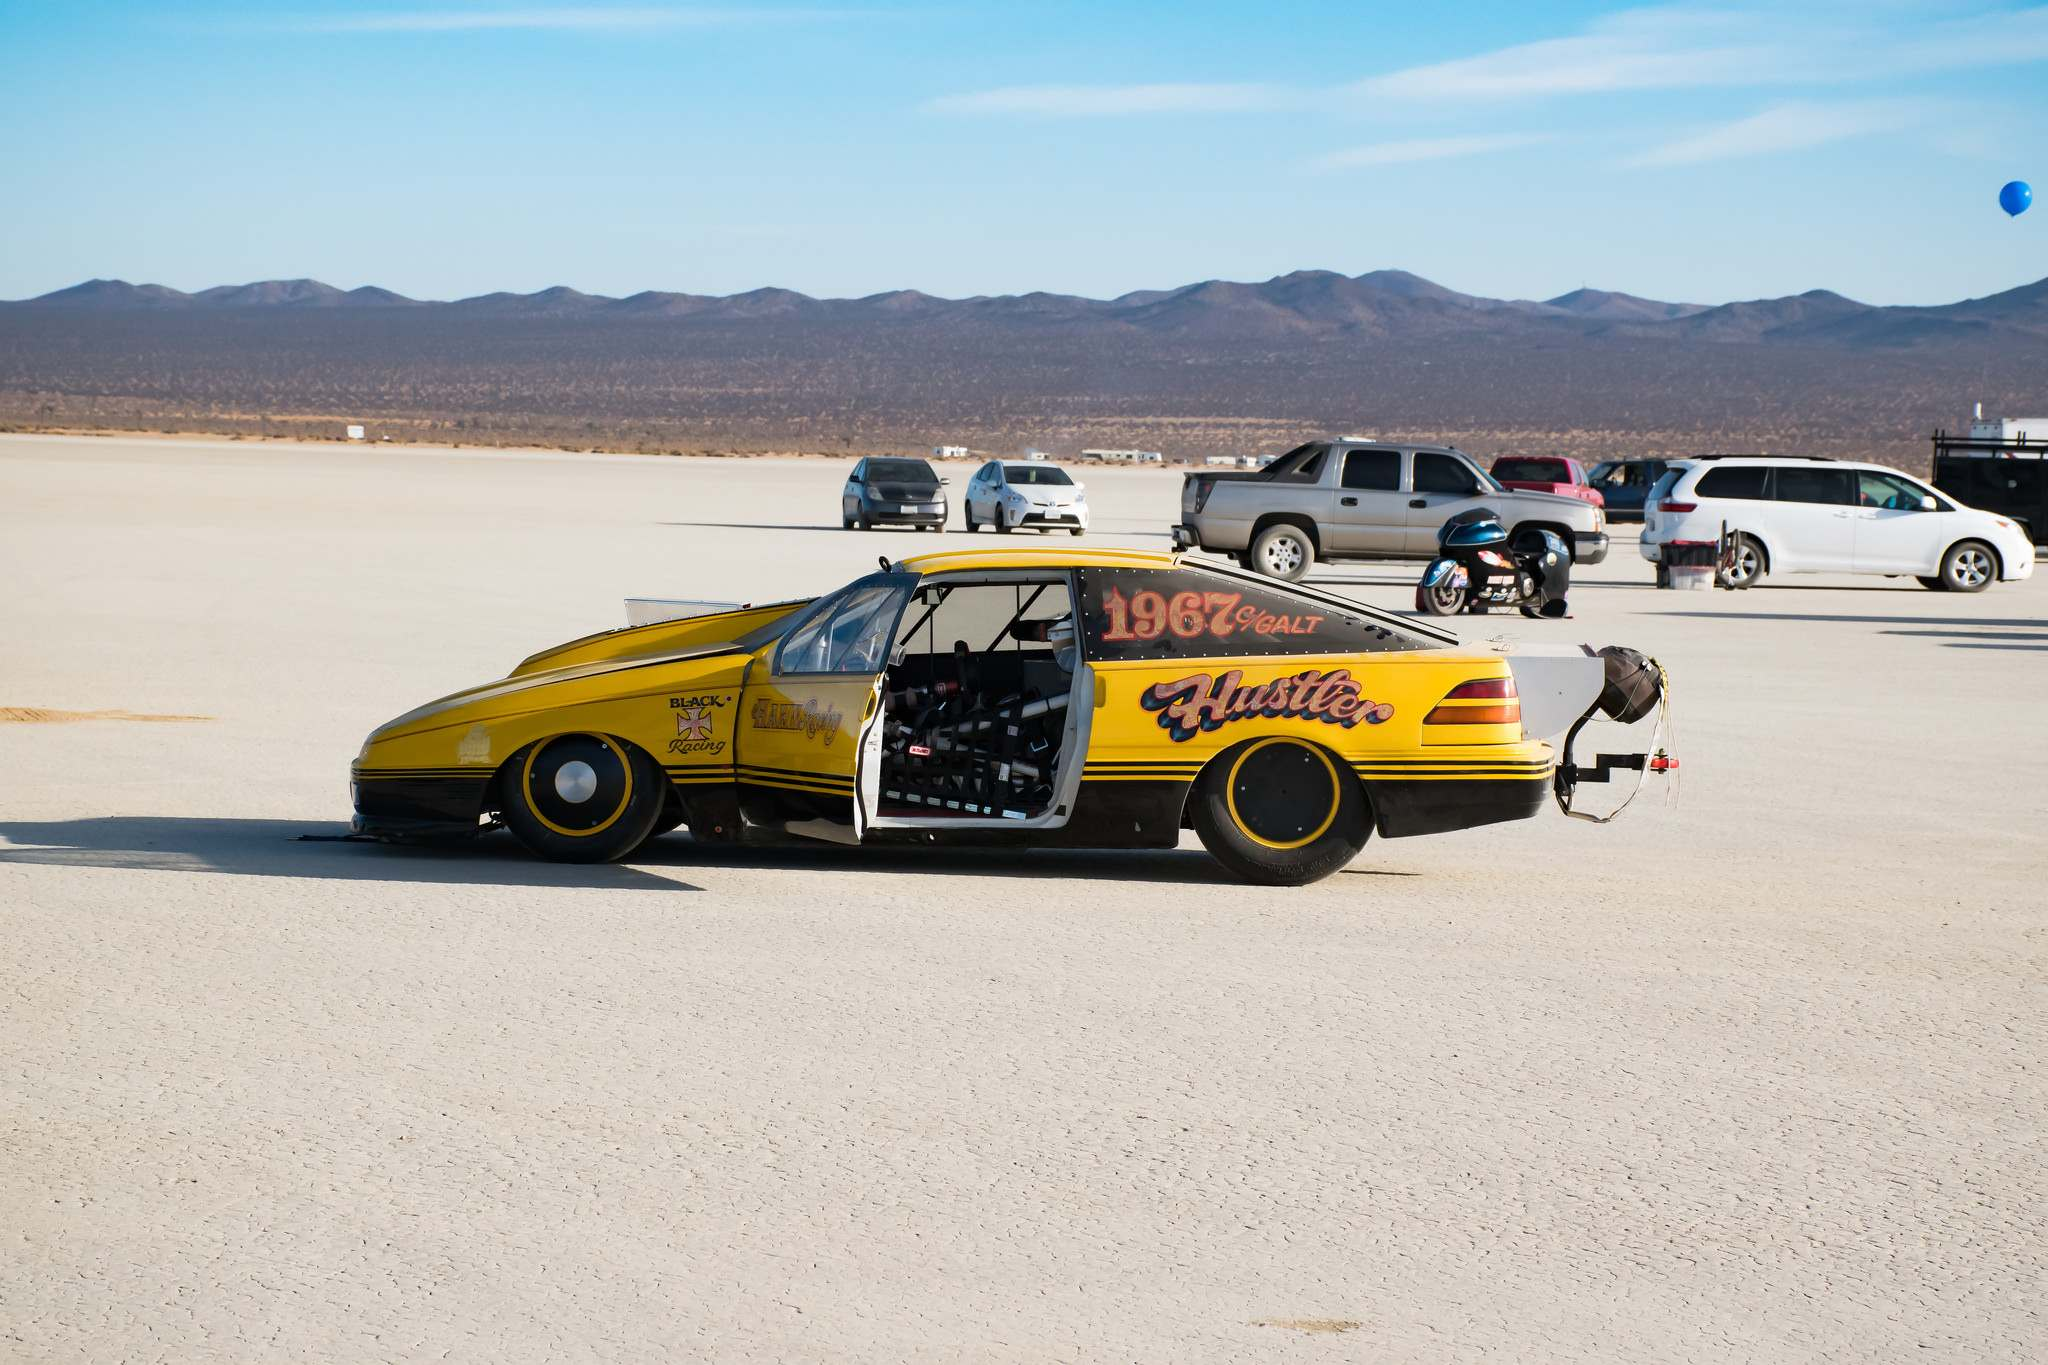 land speed racing10 Speed Racing at El Mirage Dry Lake